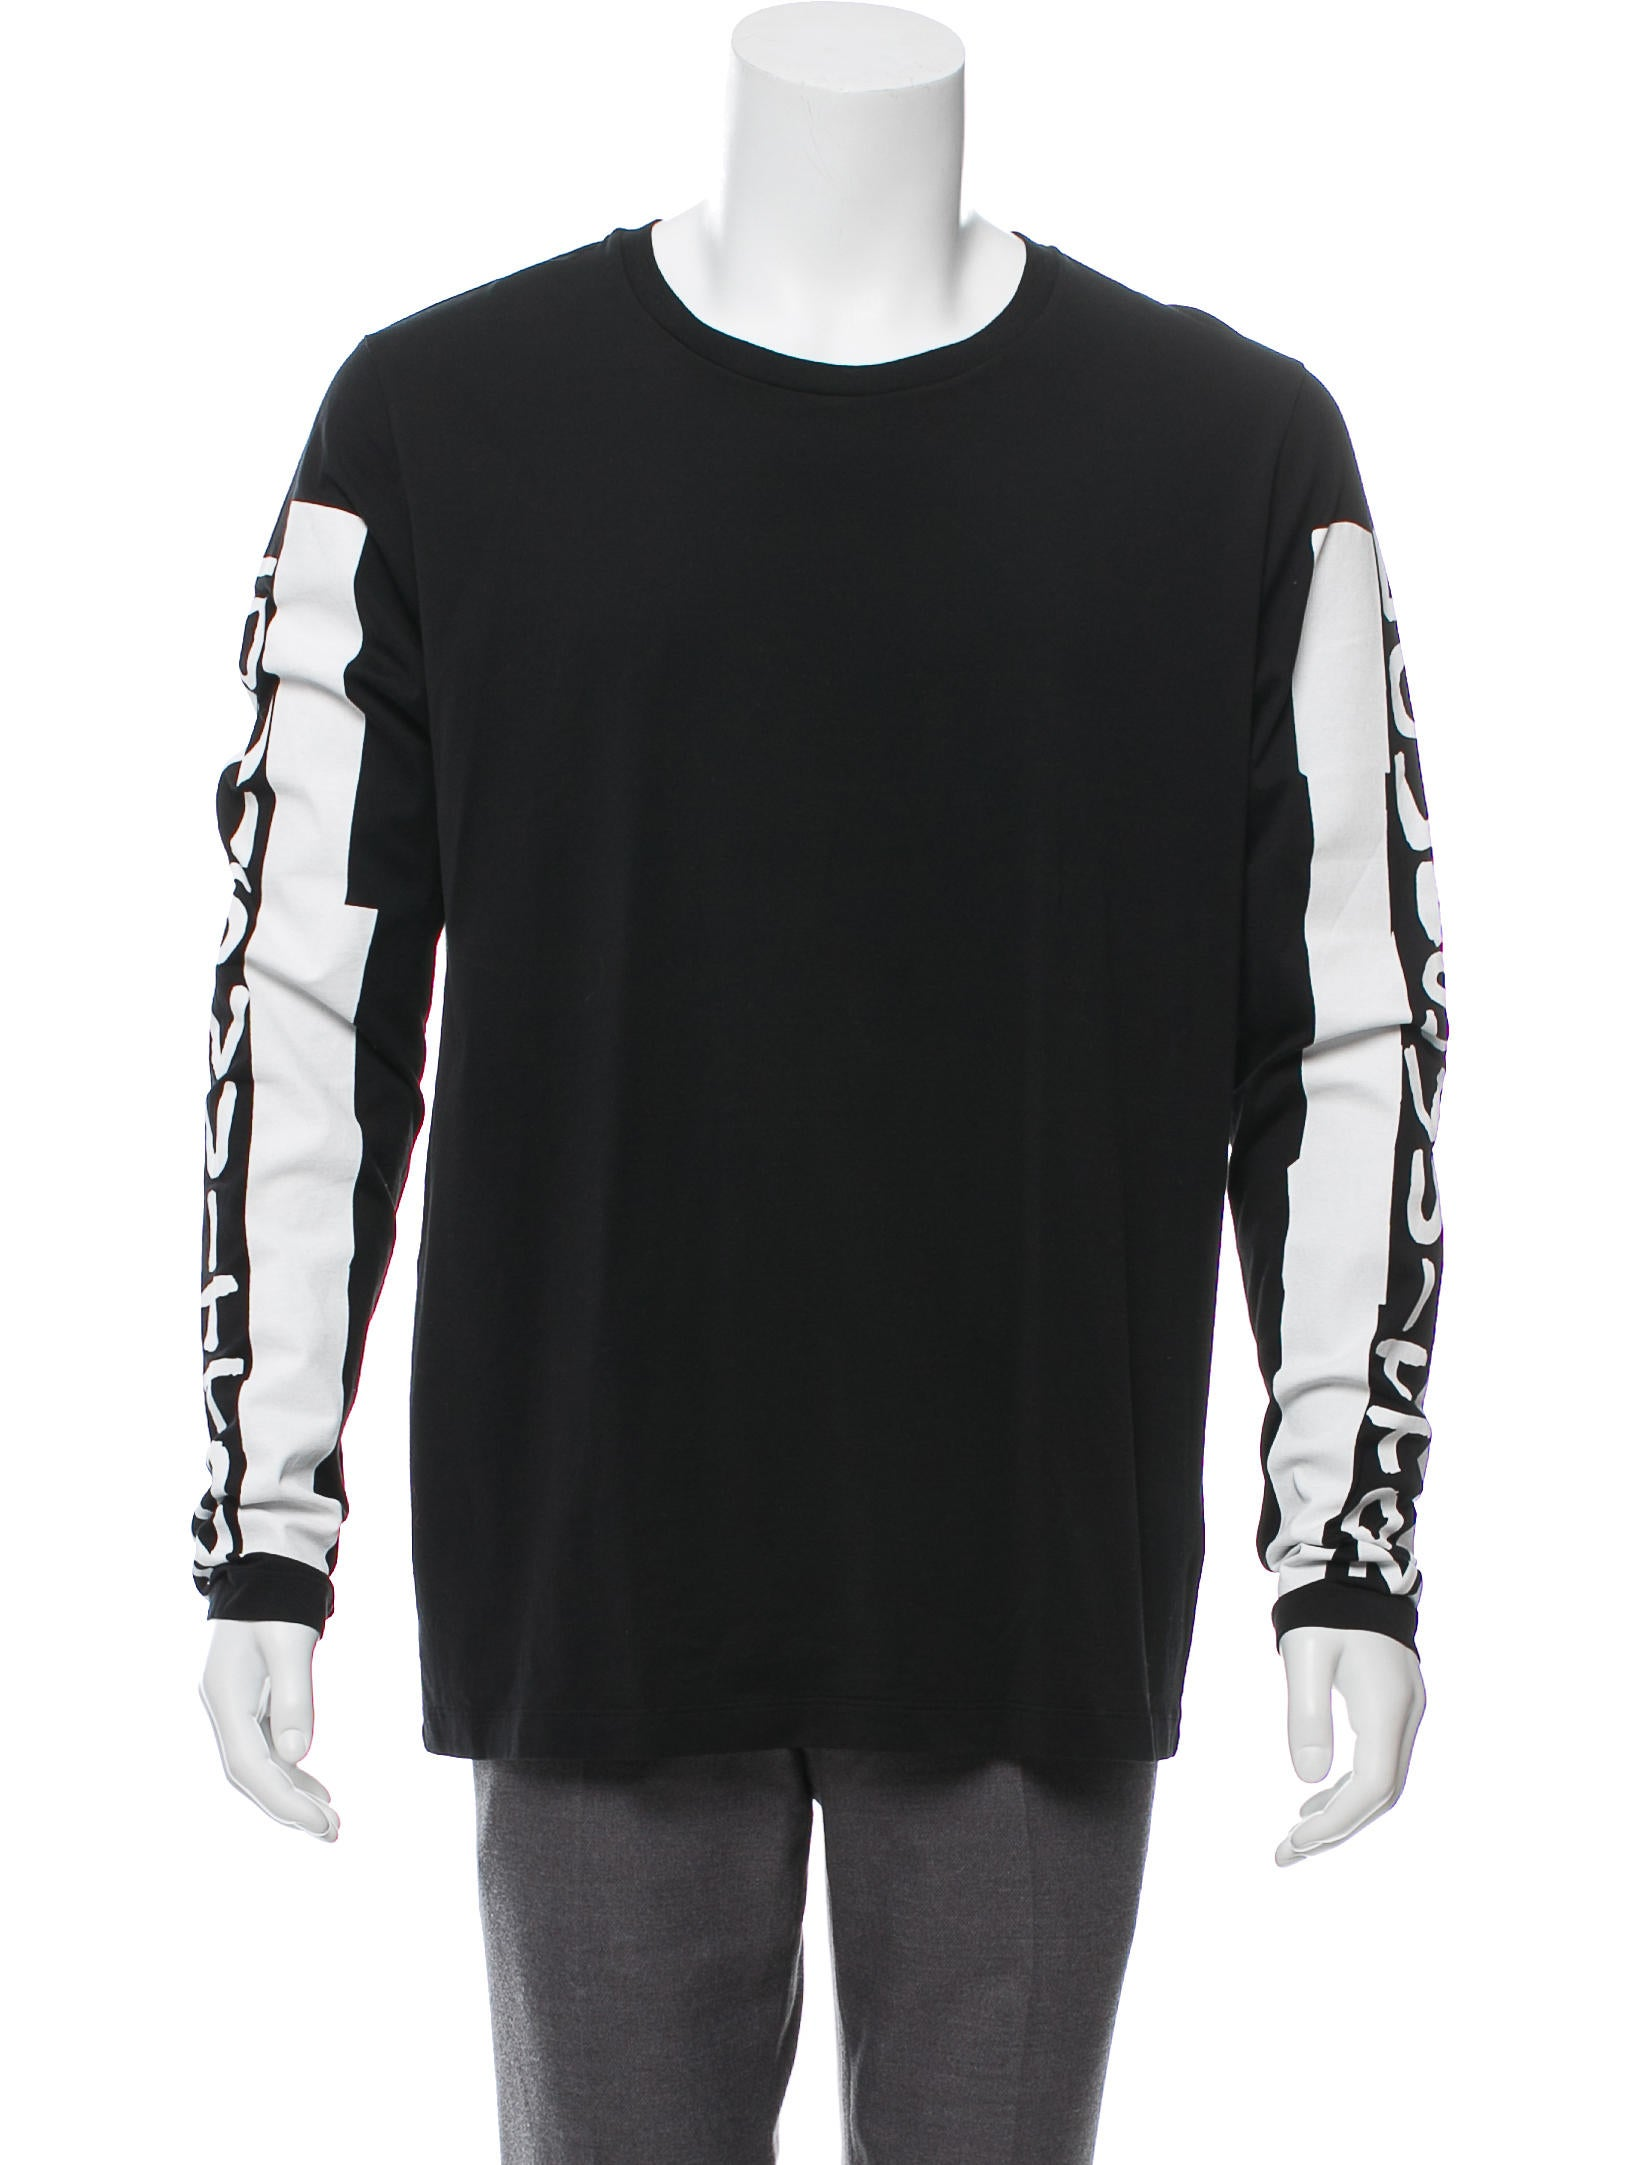 bb4831ef286d Louis Vuitton Graphic Hand Painted T-Shirt w  Tags - Clothing ...